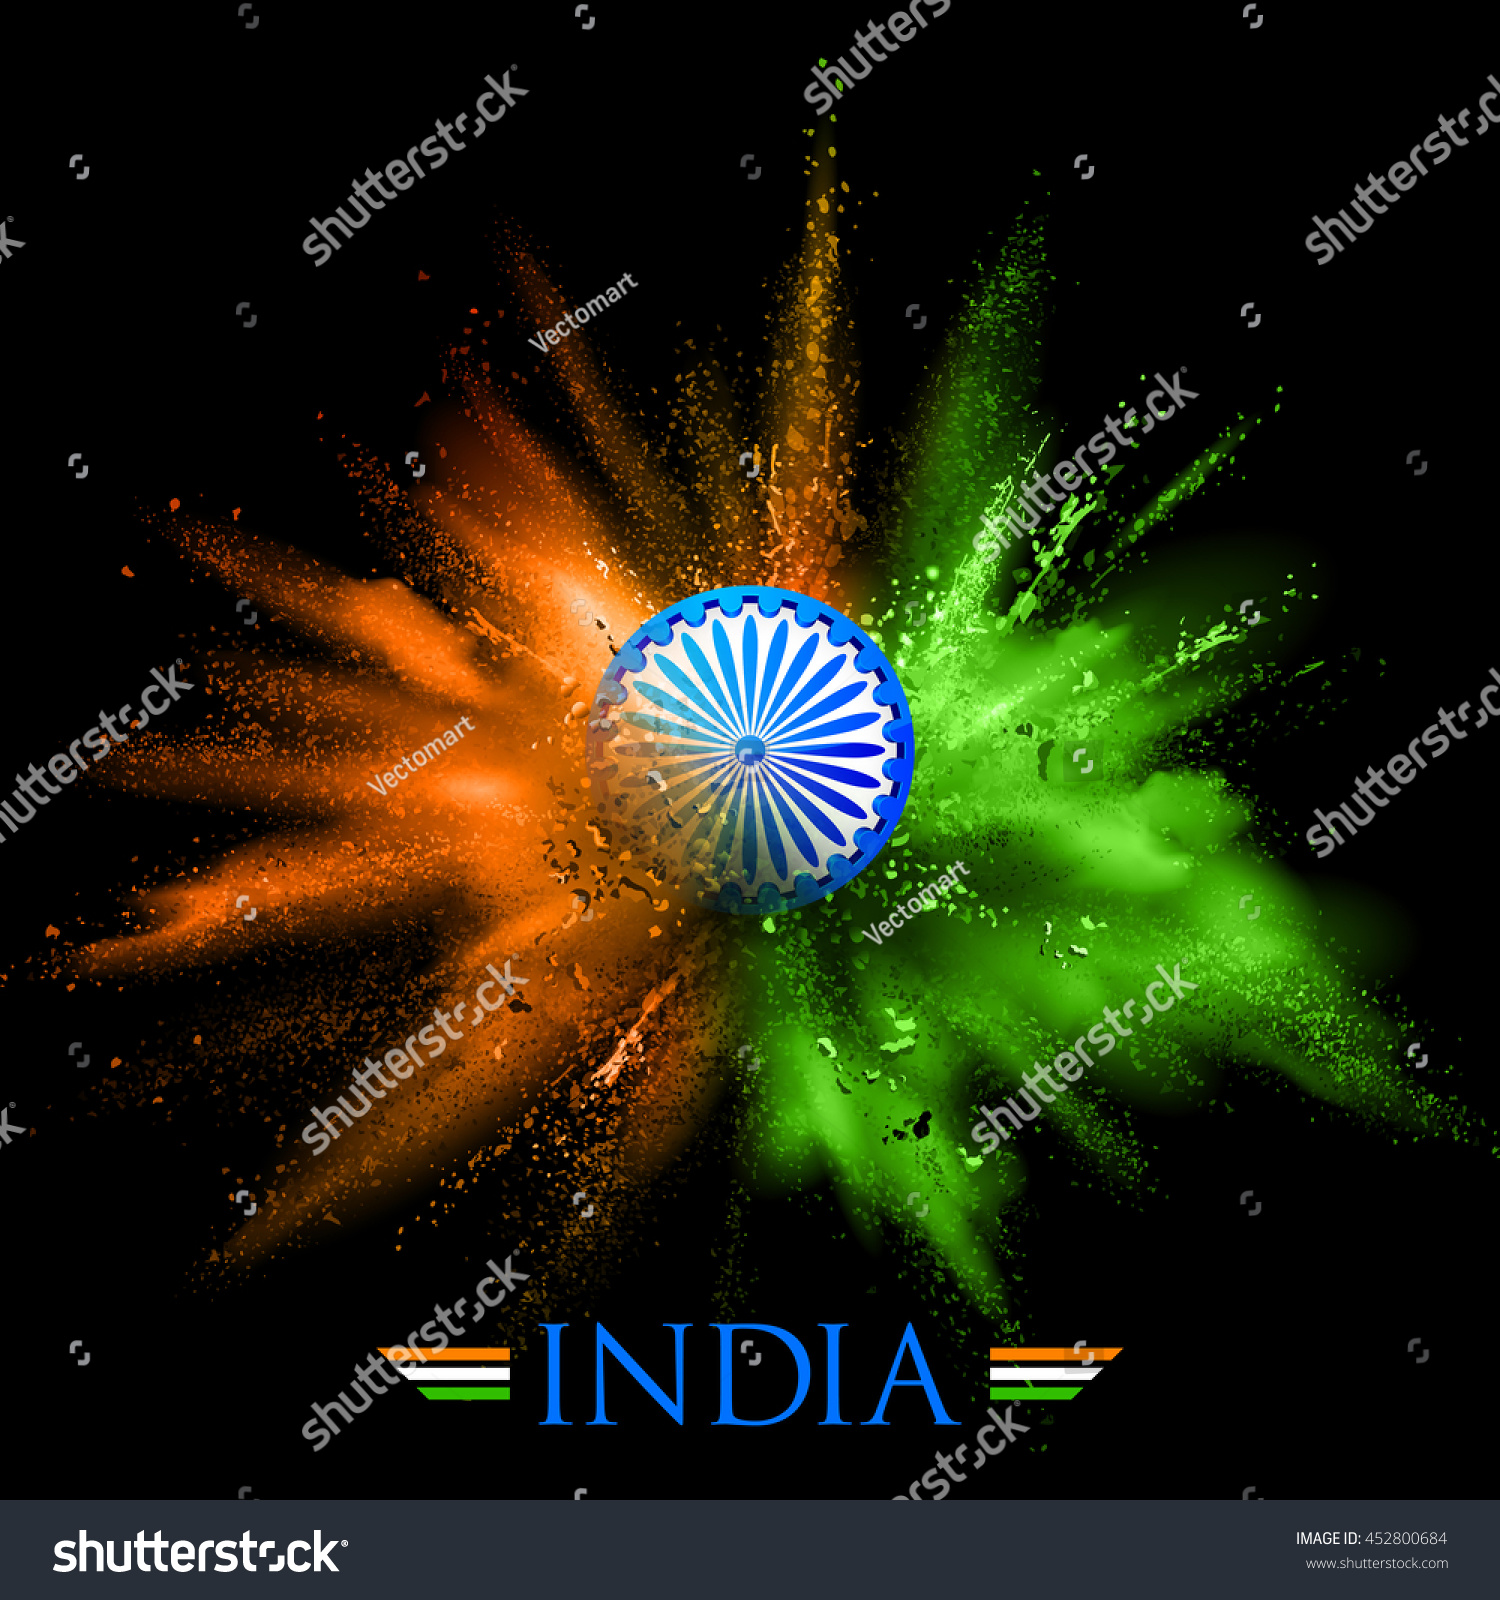 Colors website ashoka - Illustration Of India Background In Tricolor And Ashoka Chakra With Powder Color Explosion